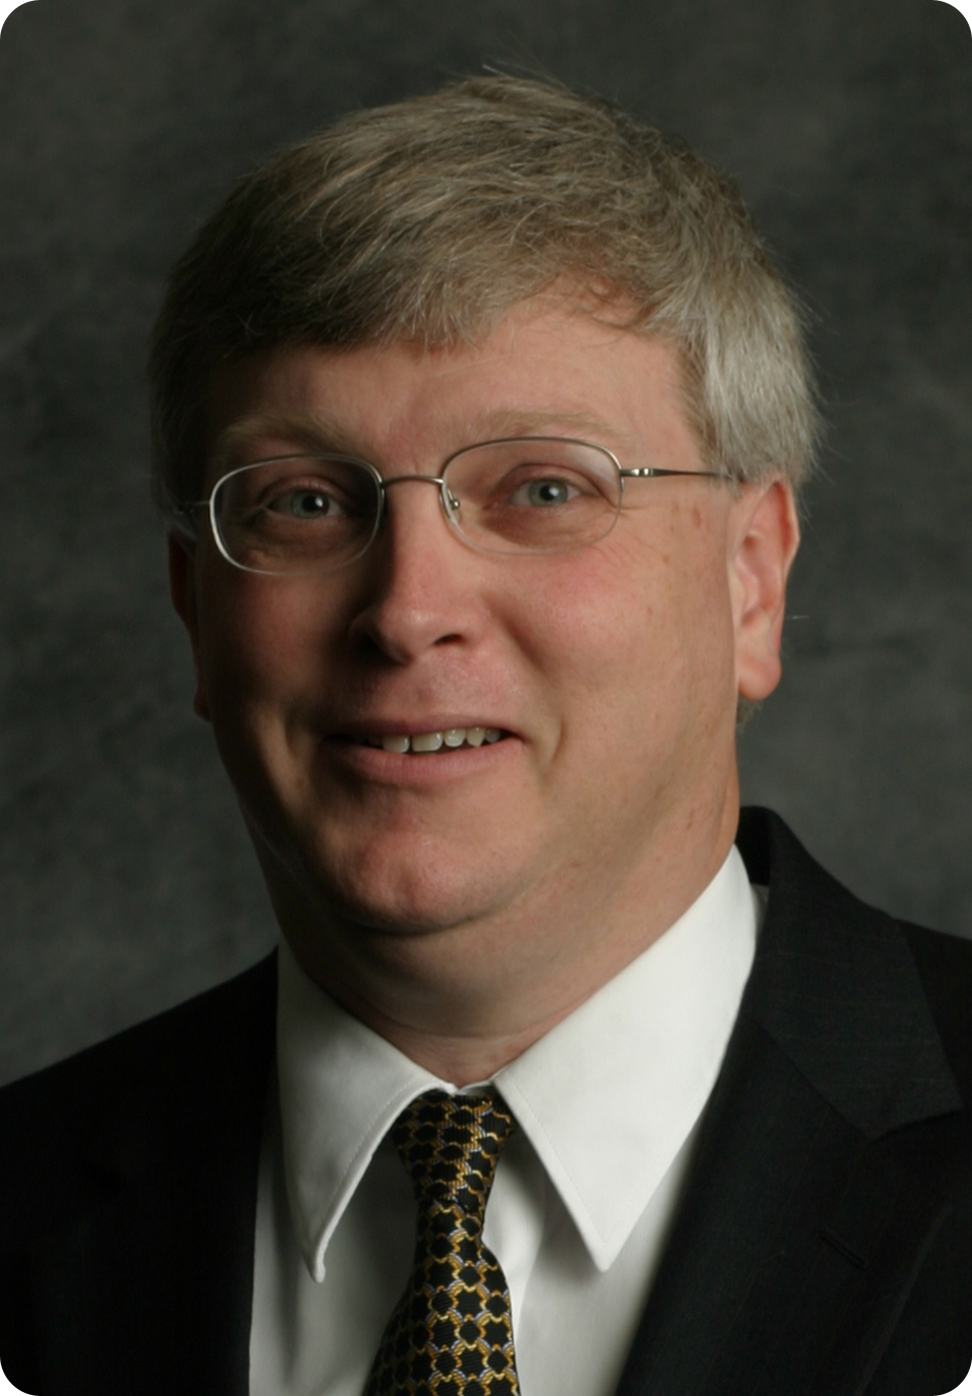 Bruce Prendergast, CPA, Director, Tax Services